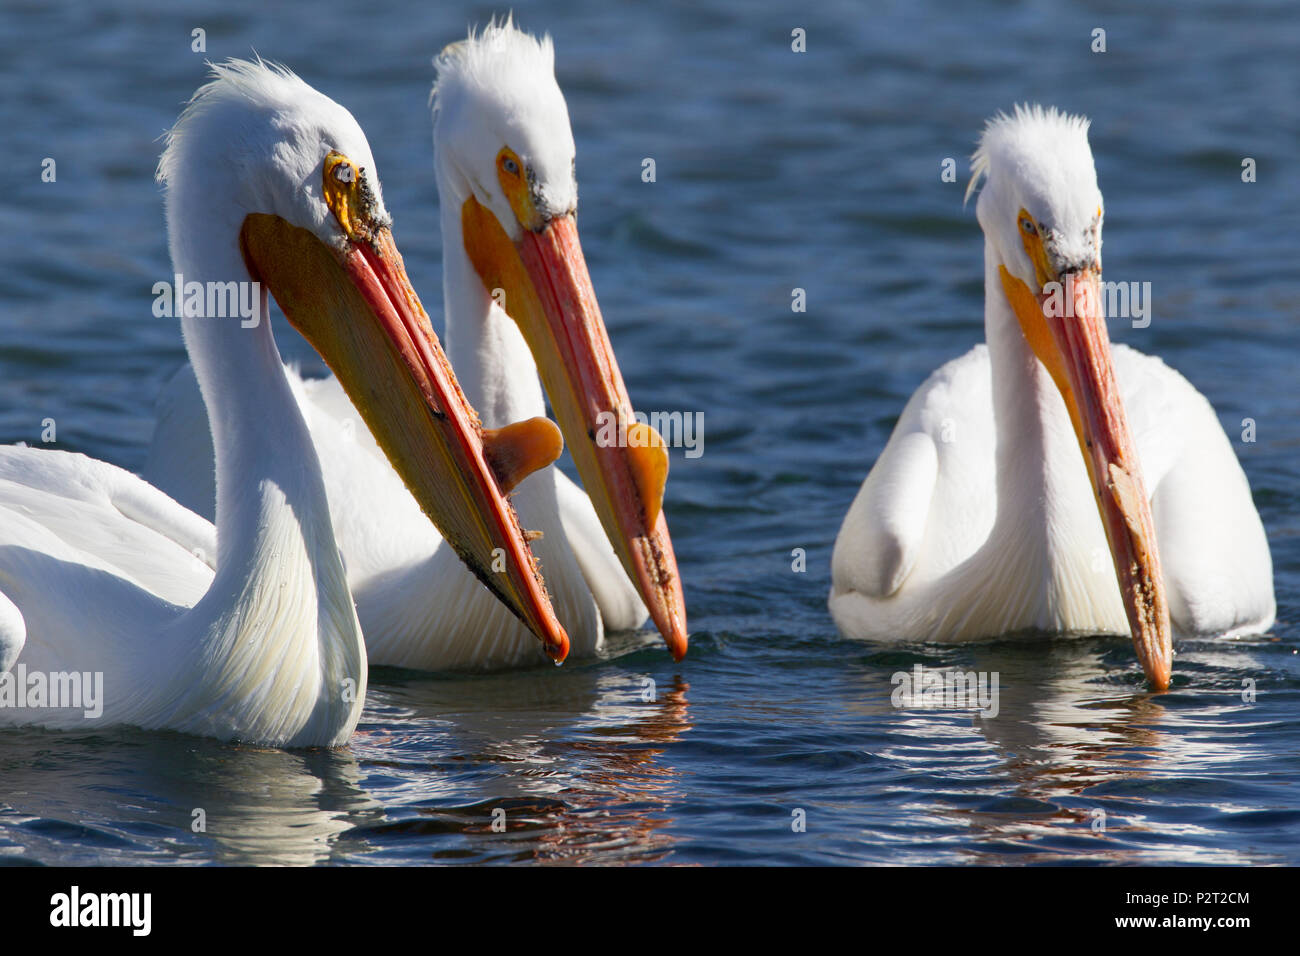 Three American white pelicans (Pelecanus erythrorhyncos) float together. Stock Photo